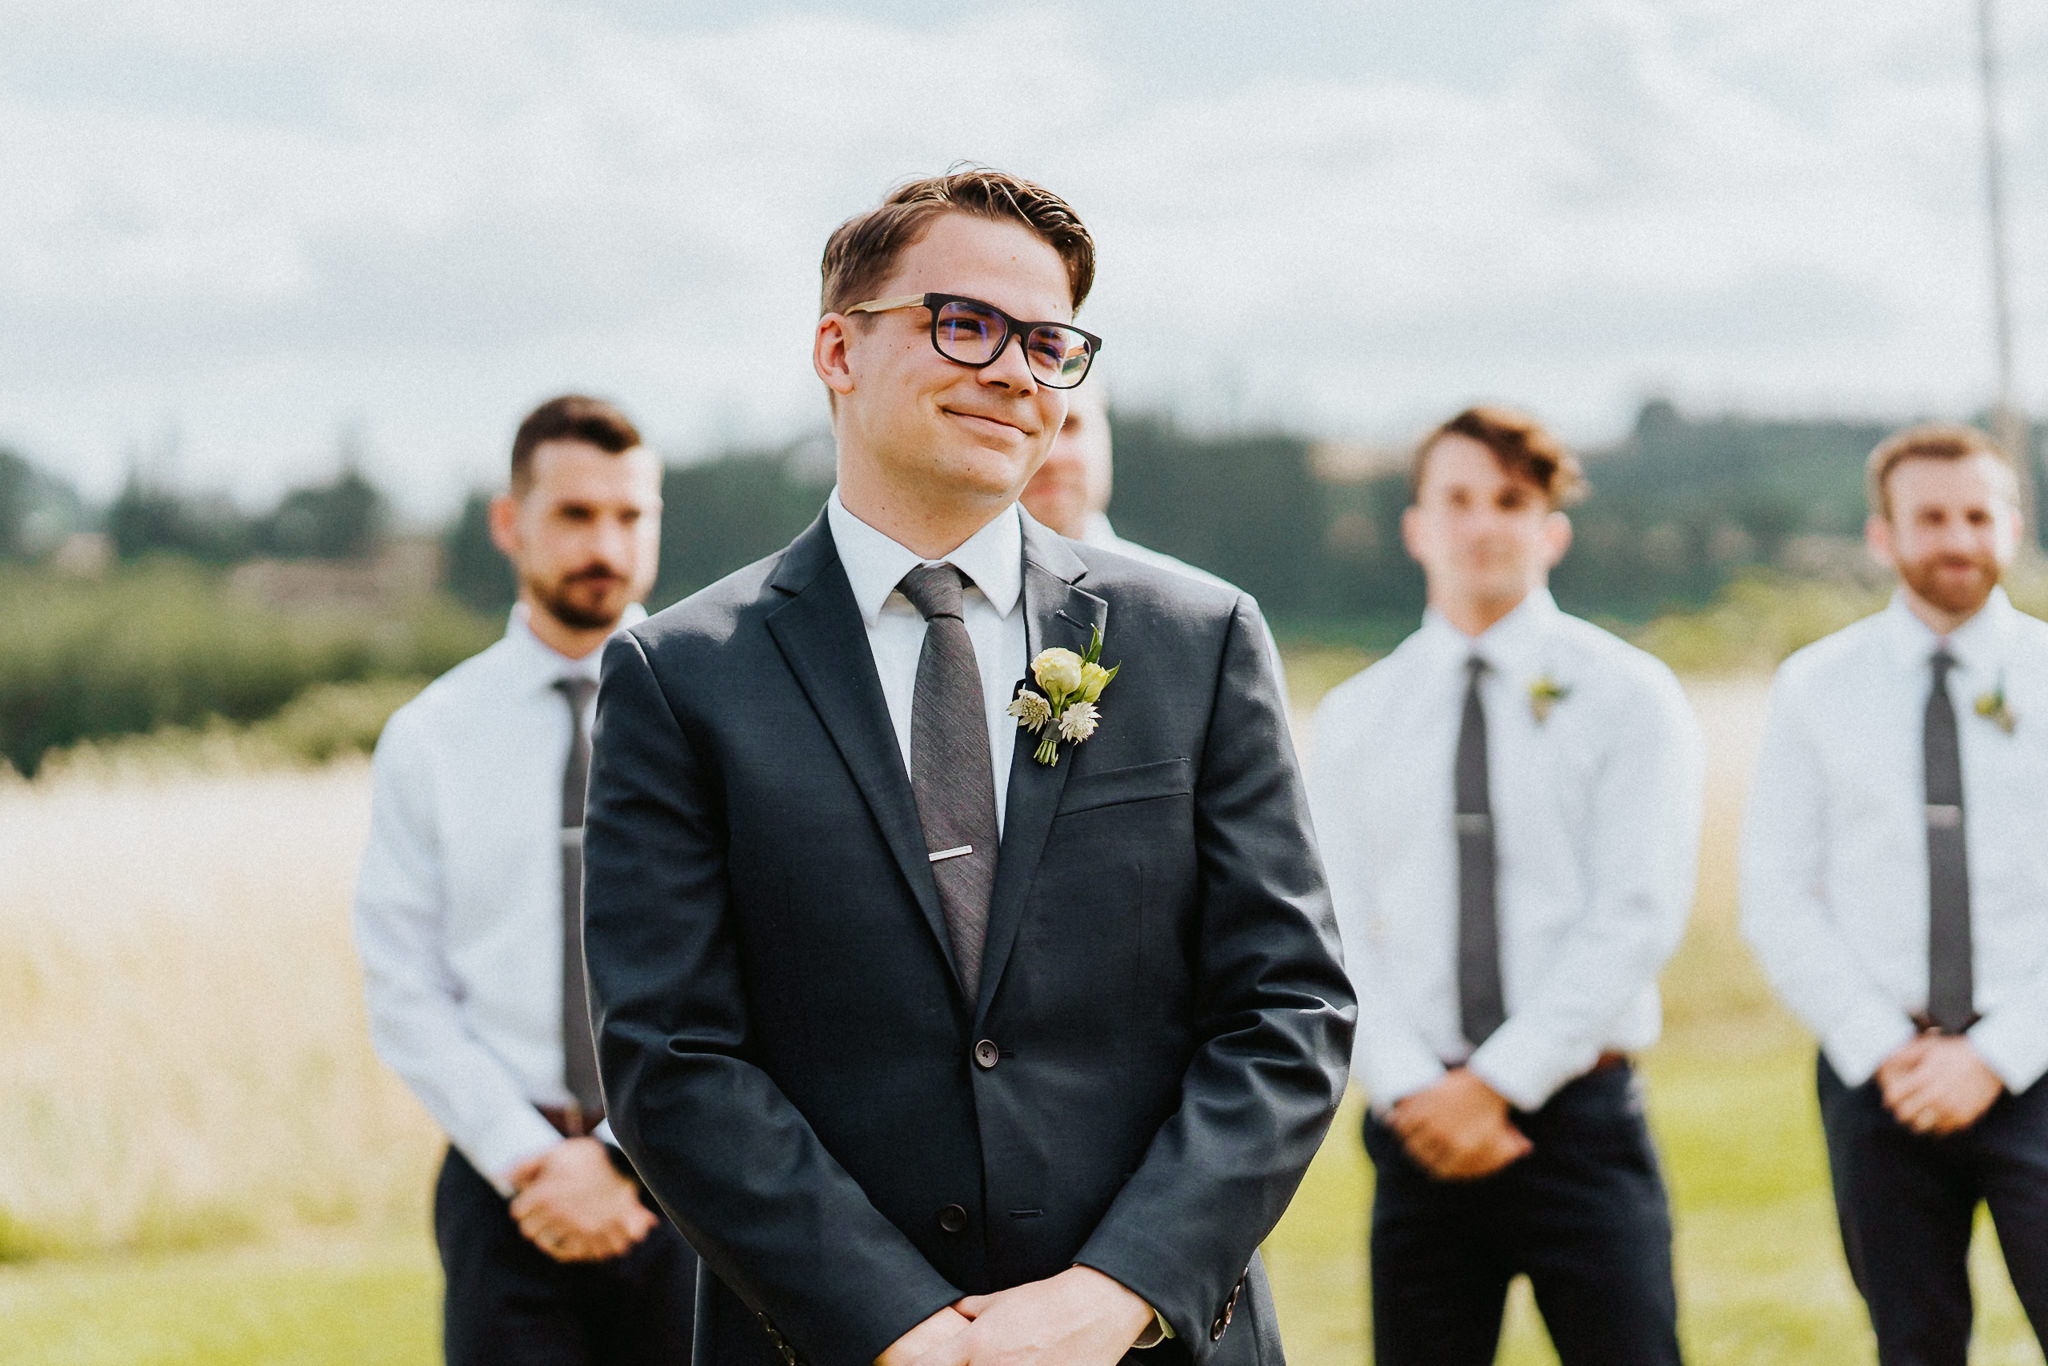 Groom waiting bride emotional alter Wedding Photography Alfred Tang